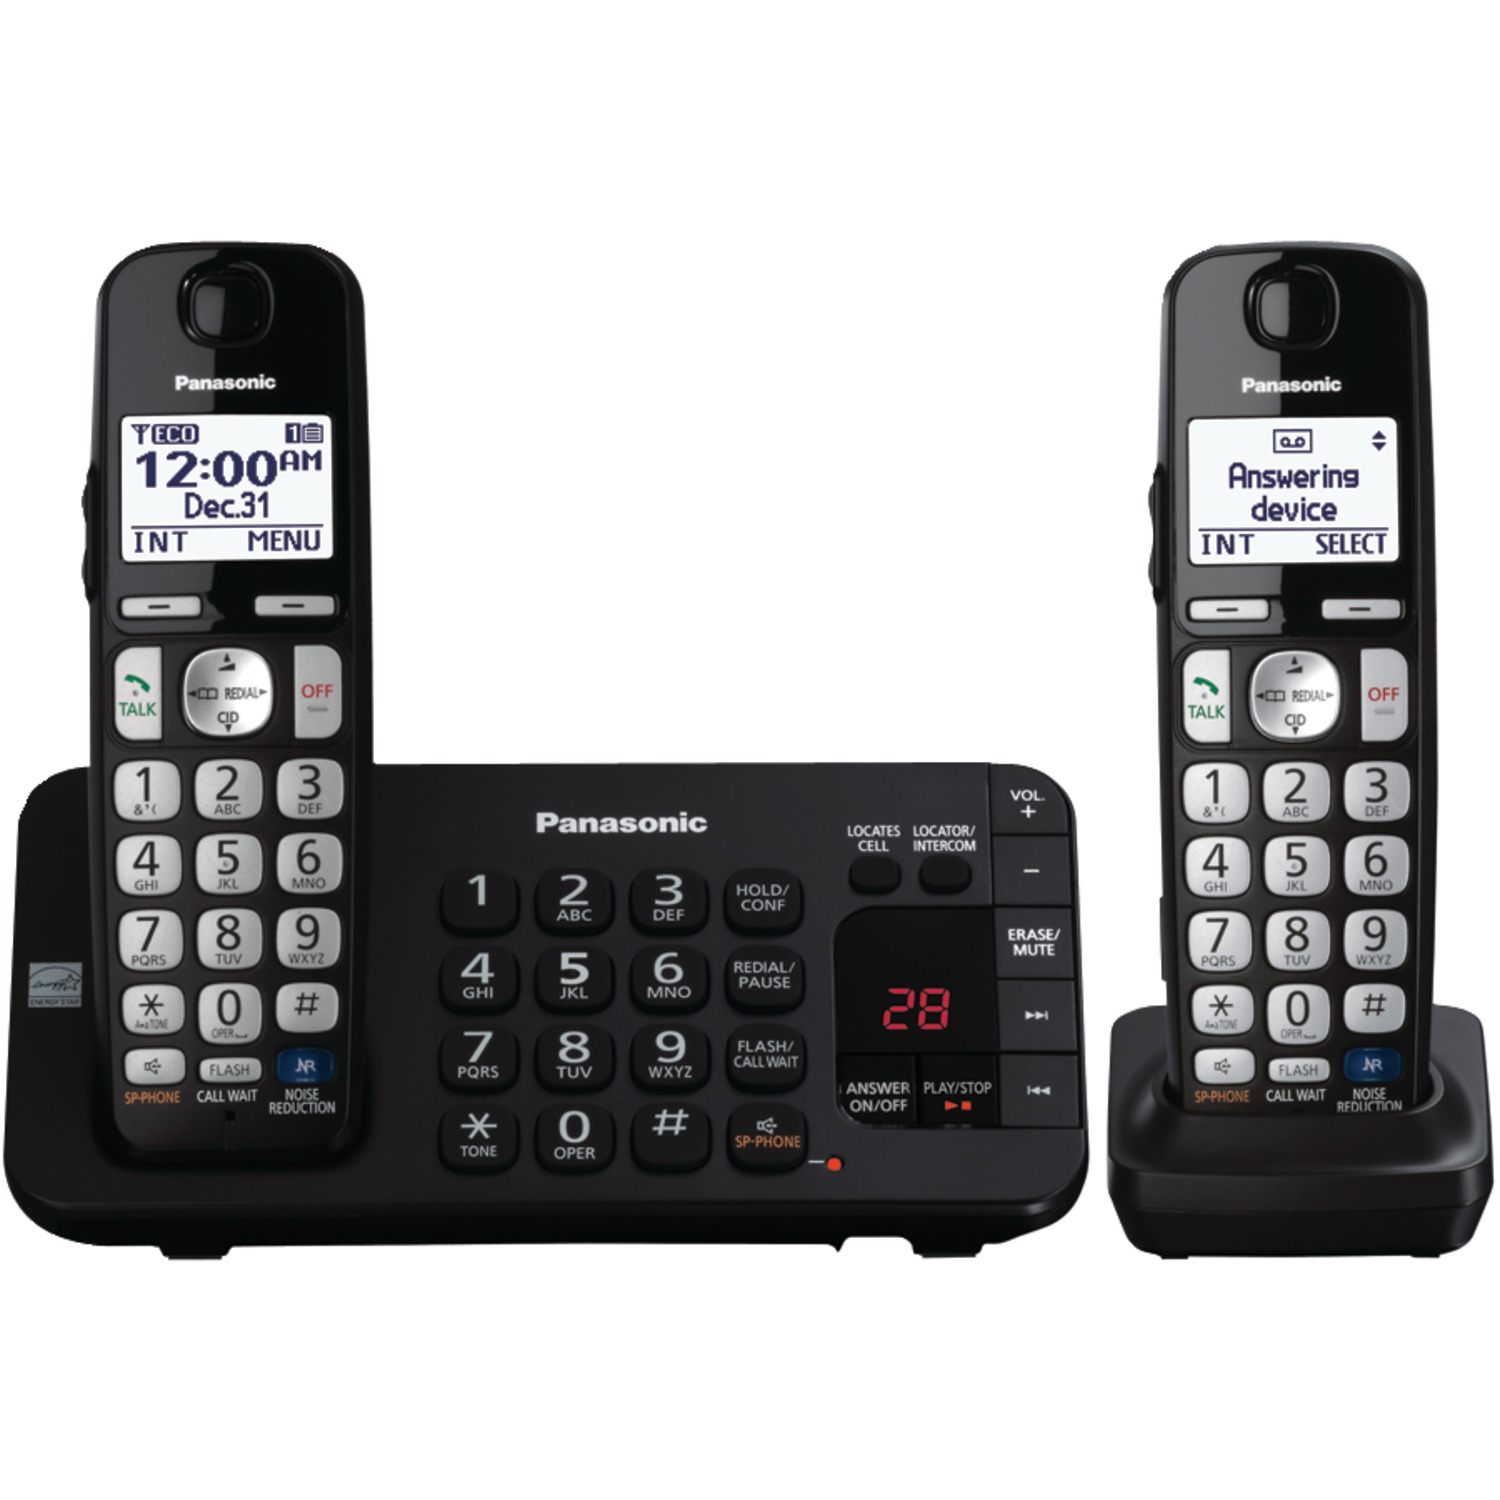 Panasonic Kx-tge243b Dect 6.0 Plus Expandable Digital Cordless Answering System (3-handset System) by Panasonic